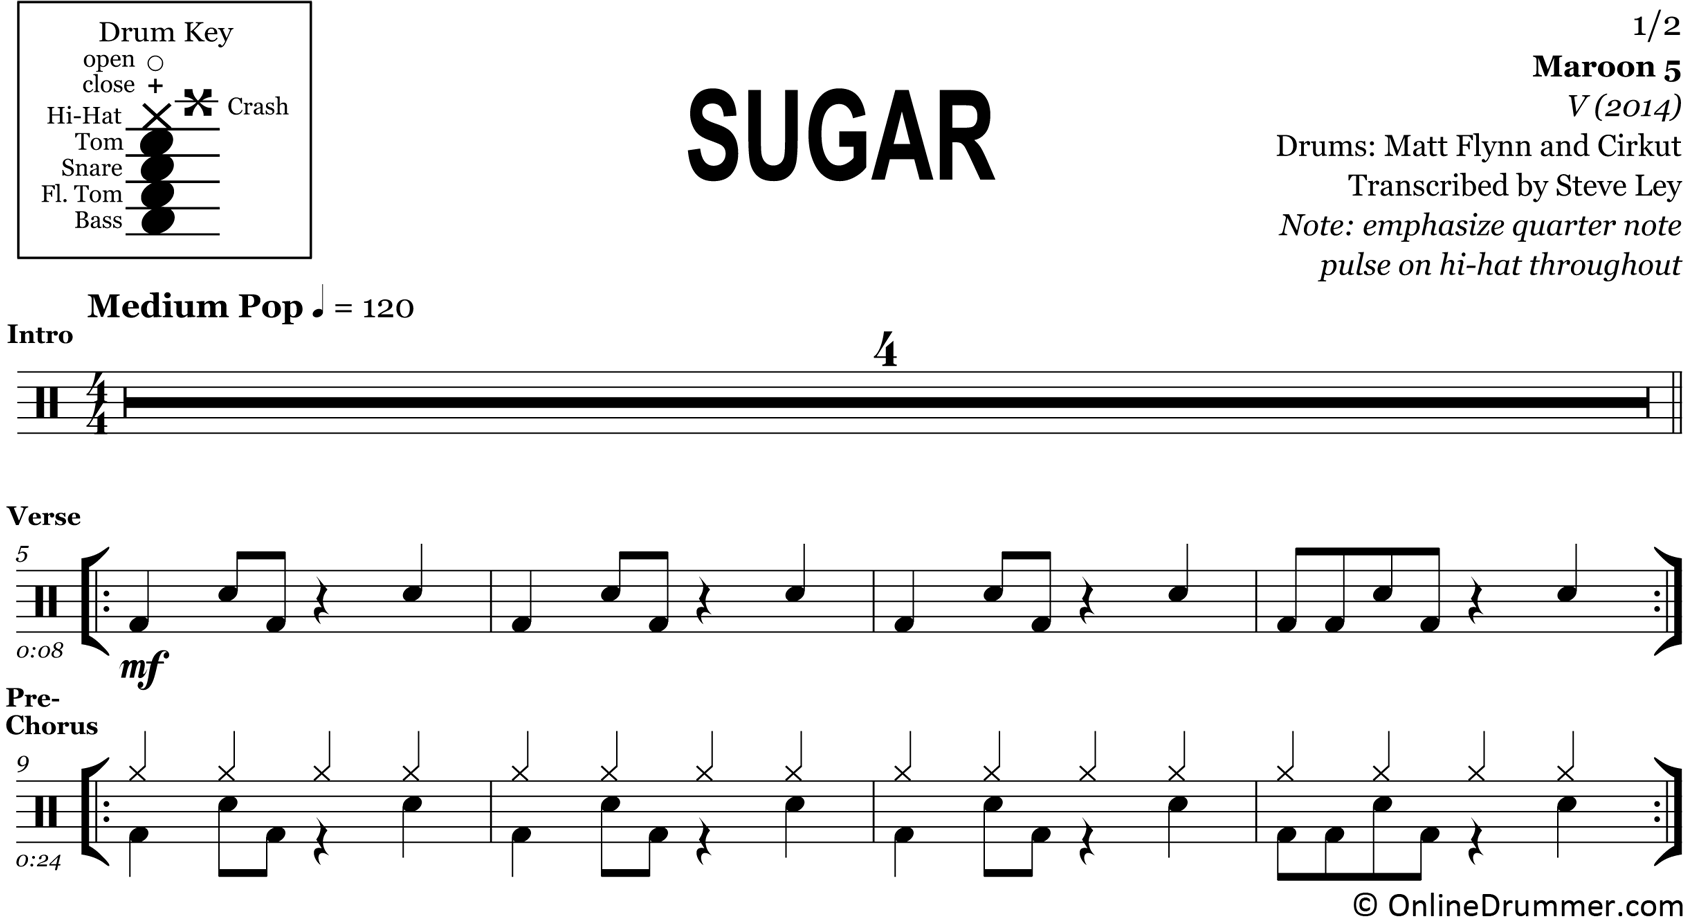 Sugar - Maroon 5 - Drum Sheet Music